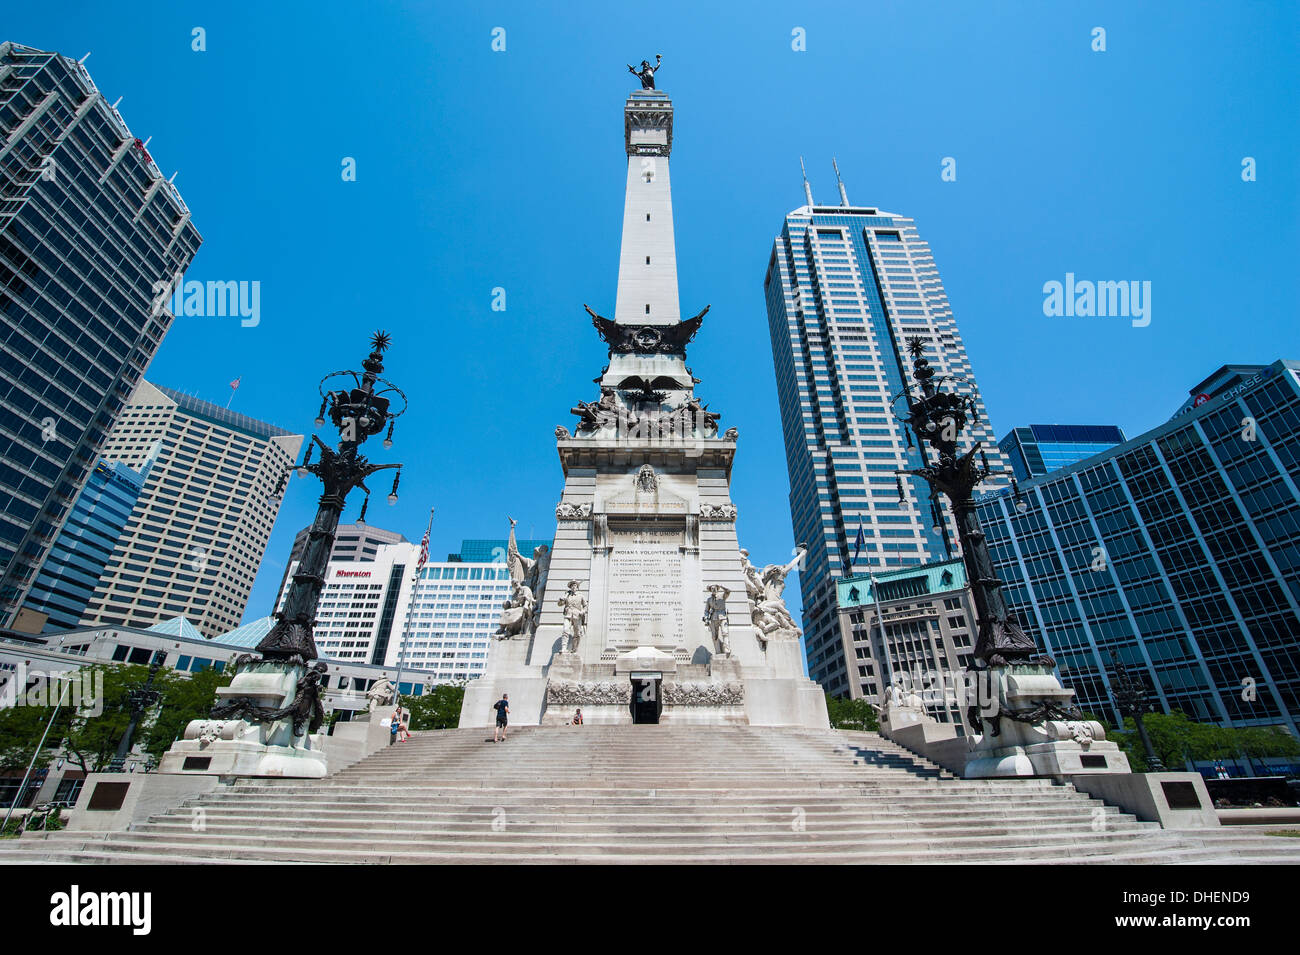 Soldiers' and Sailors' Monument, Indianapolis, Indiana, United States of America, North America - Stock Image